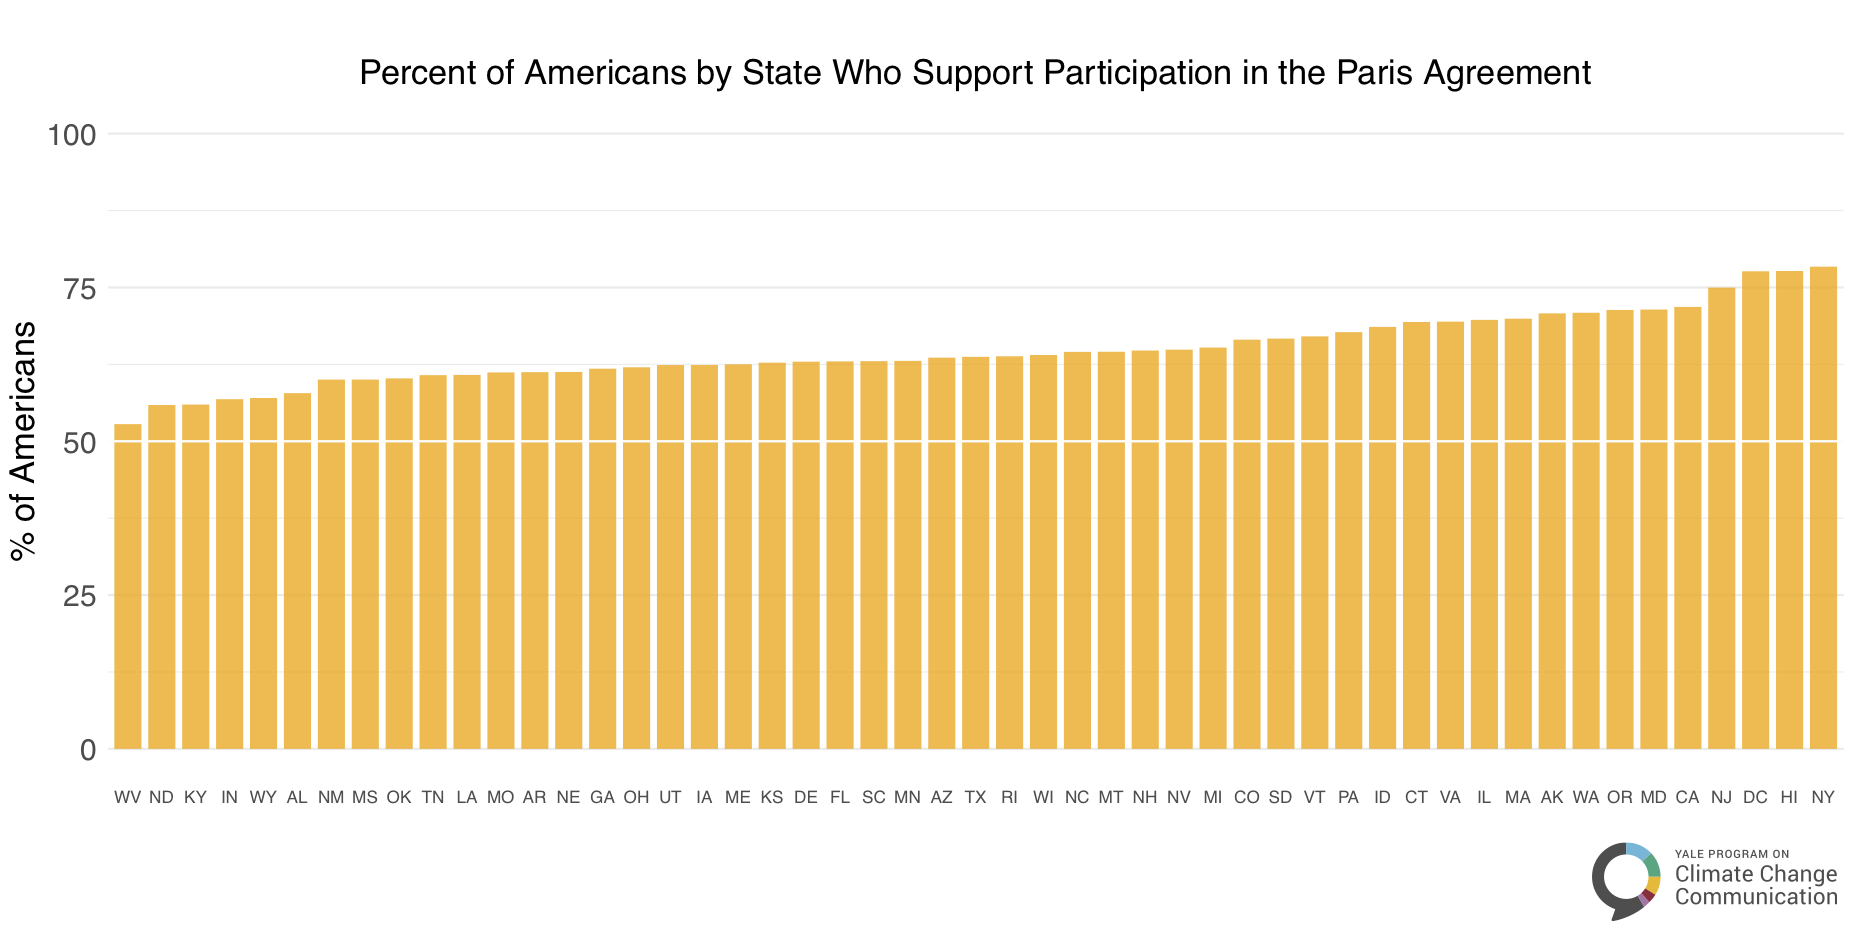 Percent of Americans by State who support participation in Paris Climate Agreement